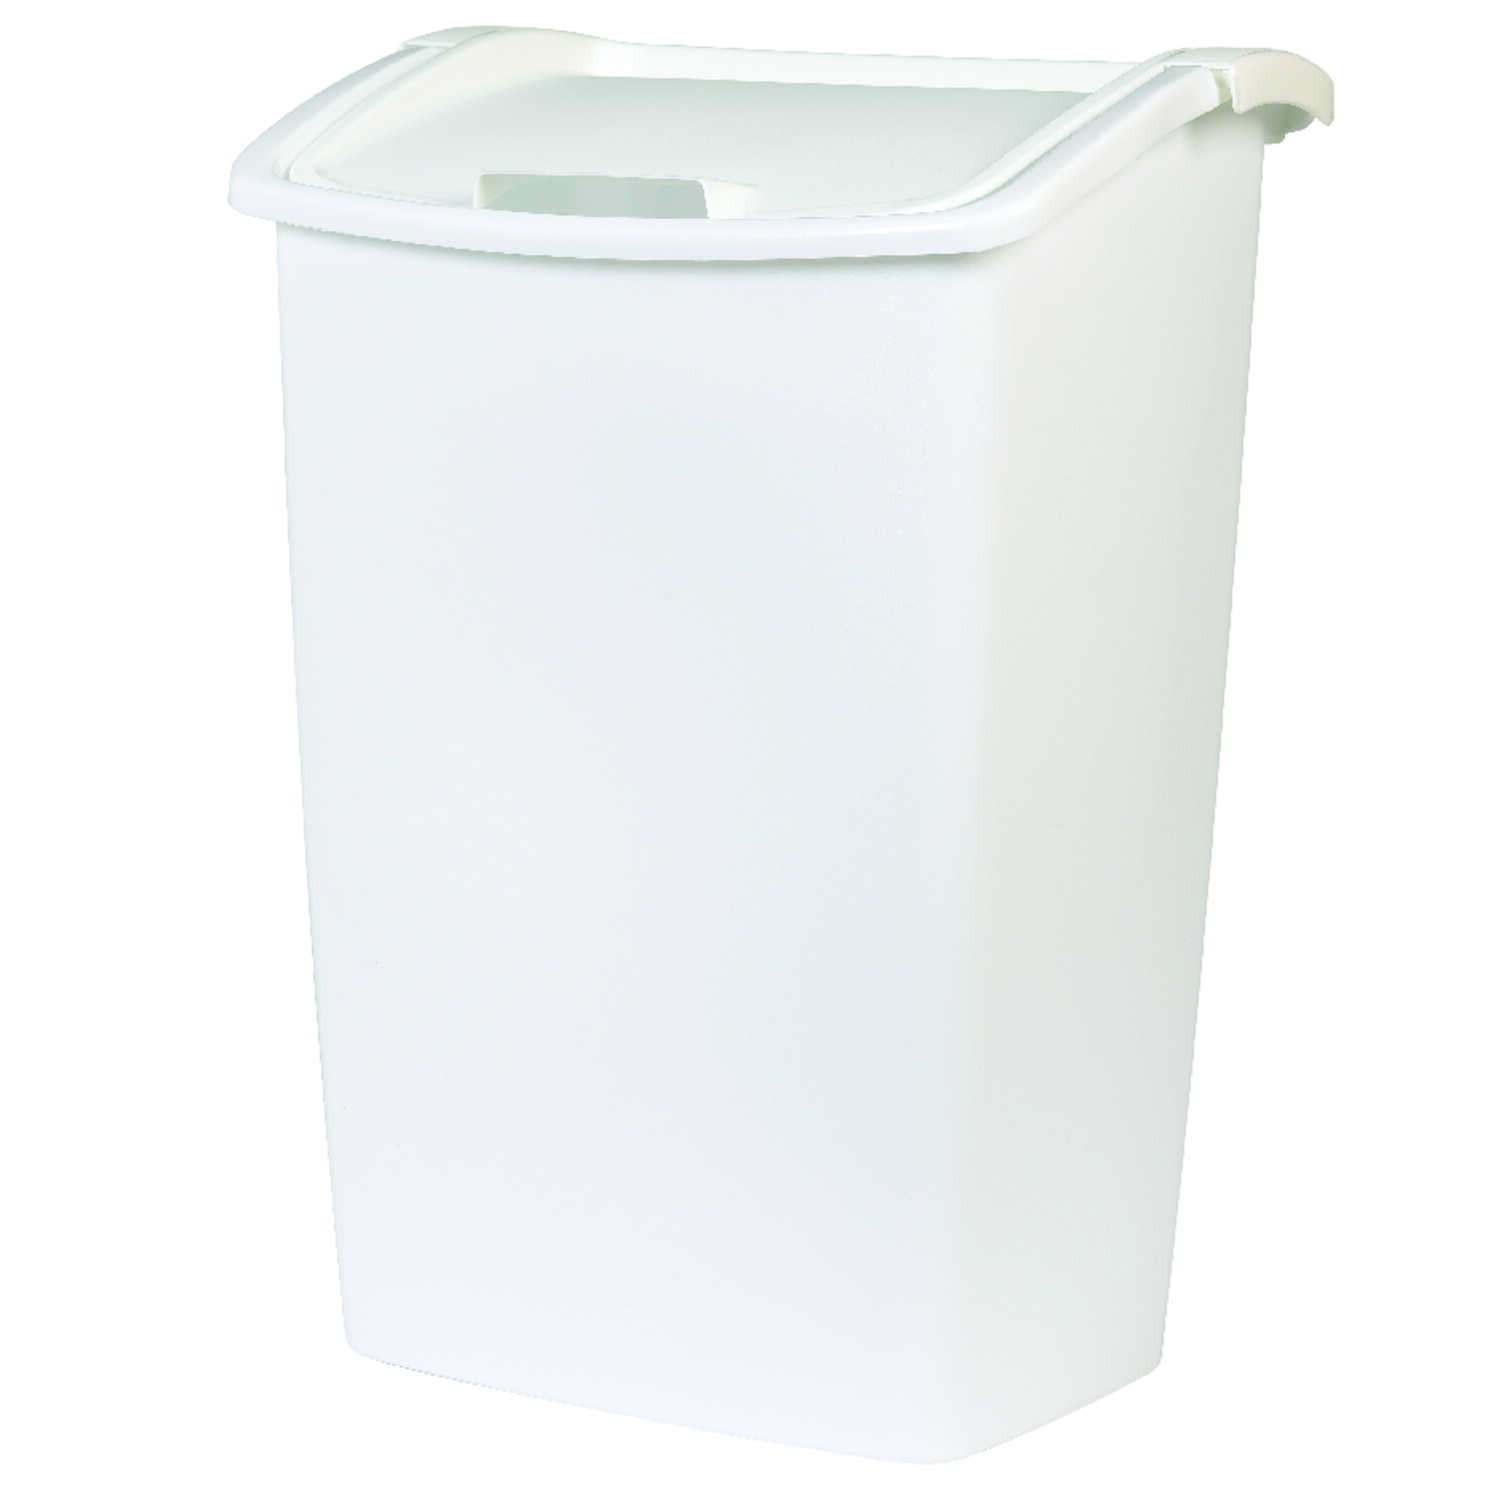 Rubbermaid  11.25 gal. White  Swing Out  Wastebasket